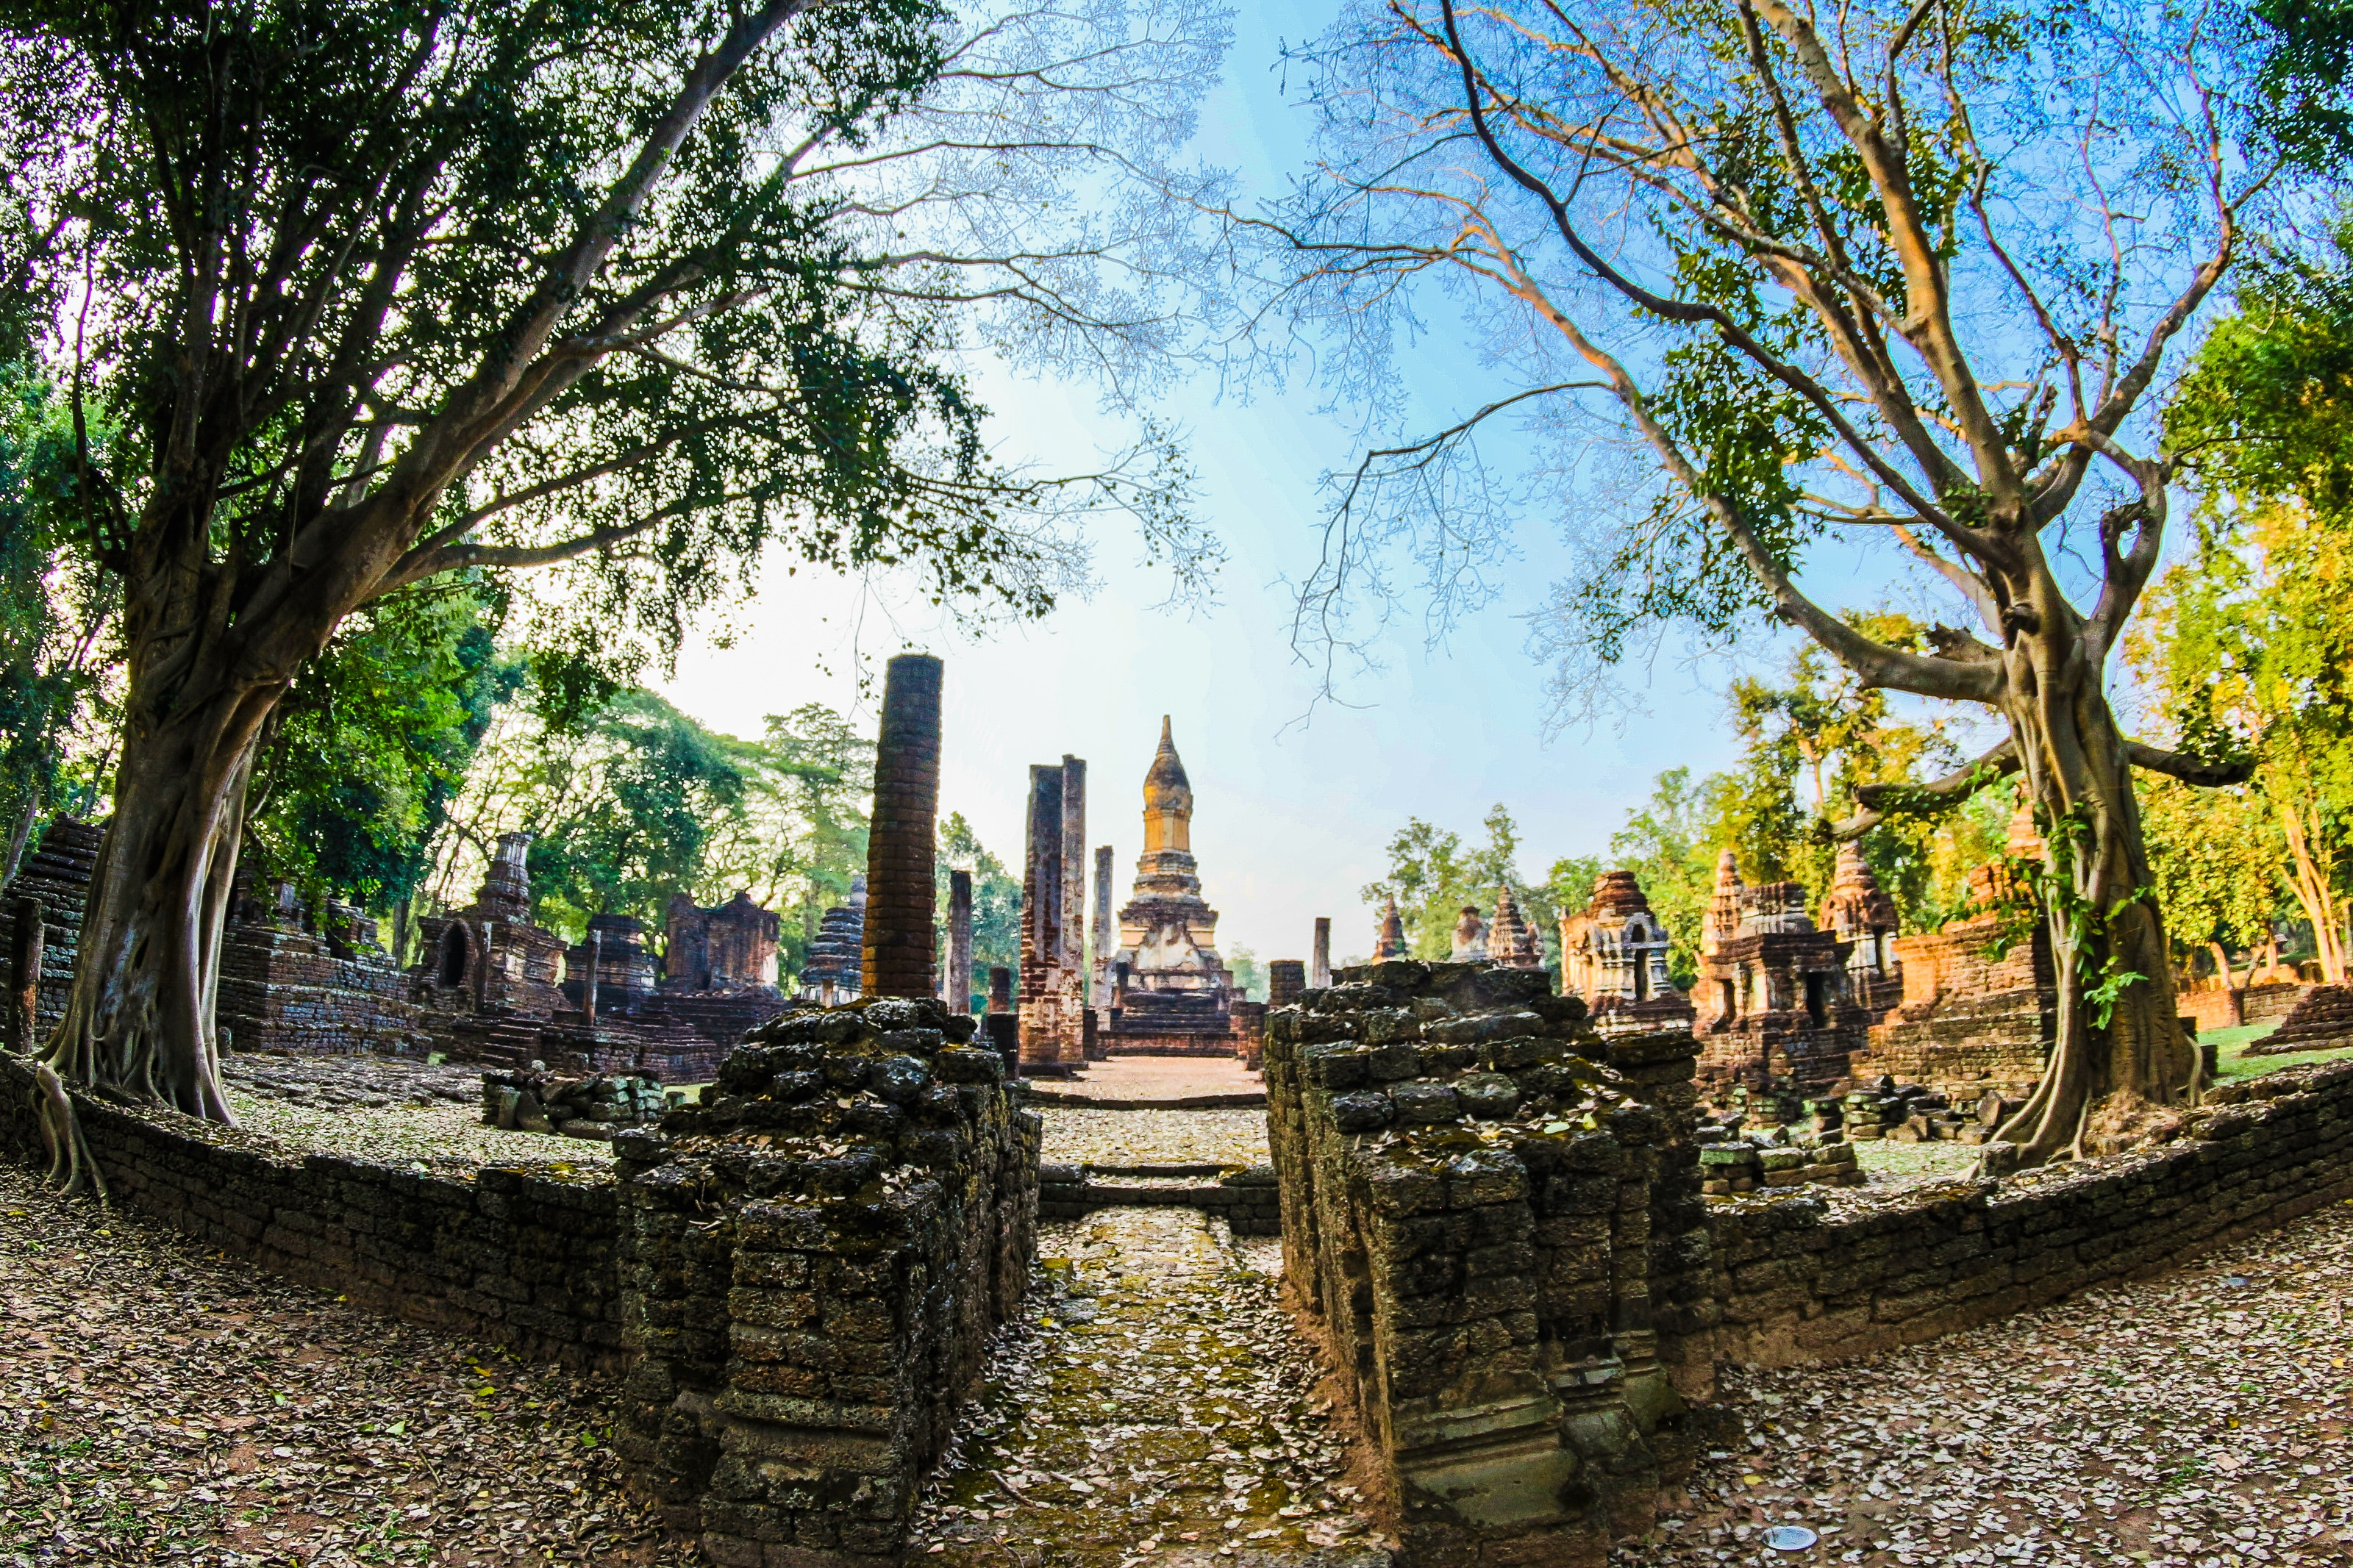 Fish Eye Lens Pathway Along the Temple, Ancient, Thai, Sculpture, Spiritual, HQ Photo